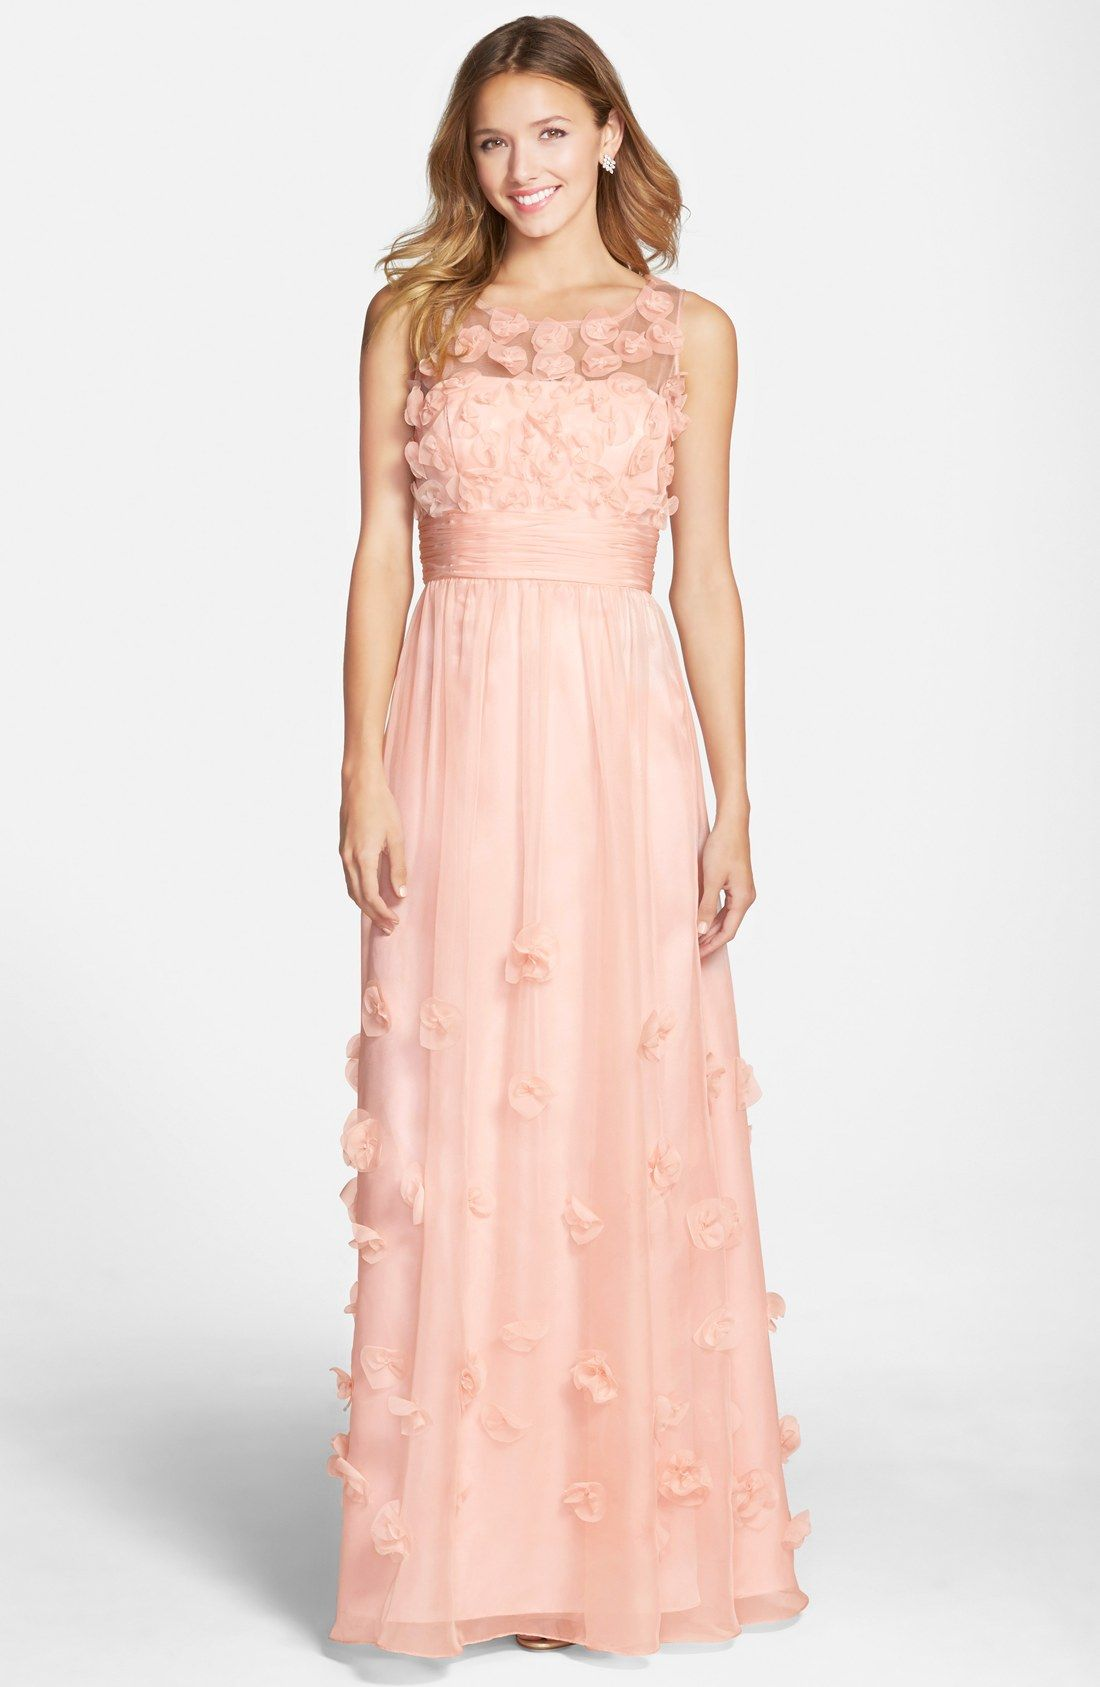 3dd4e588c This floral applique chiffon gown from Nordstrom is so pretty and sweet! It  feels like such a throw back to a 50's style prom dress. @nordstrom # Nordstrom # ...